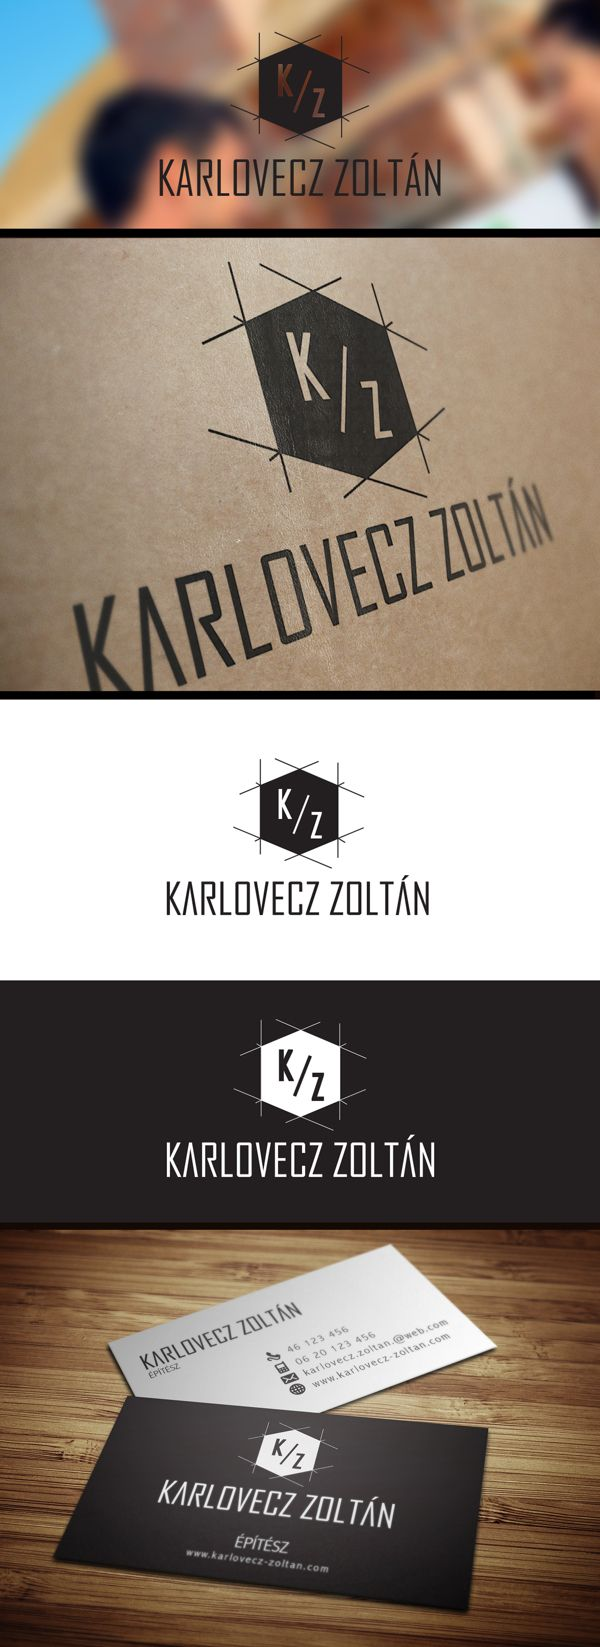 K.Z Architect logo by Attila Nagy, via Behance